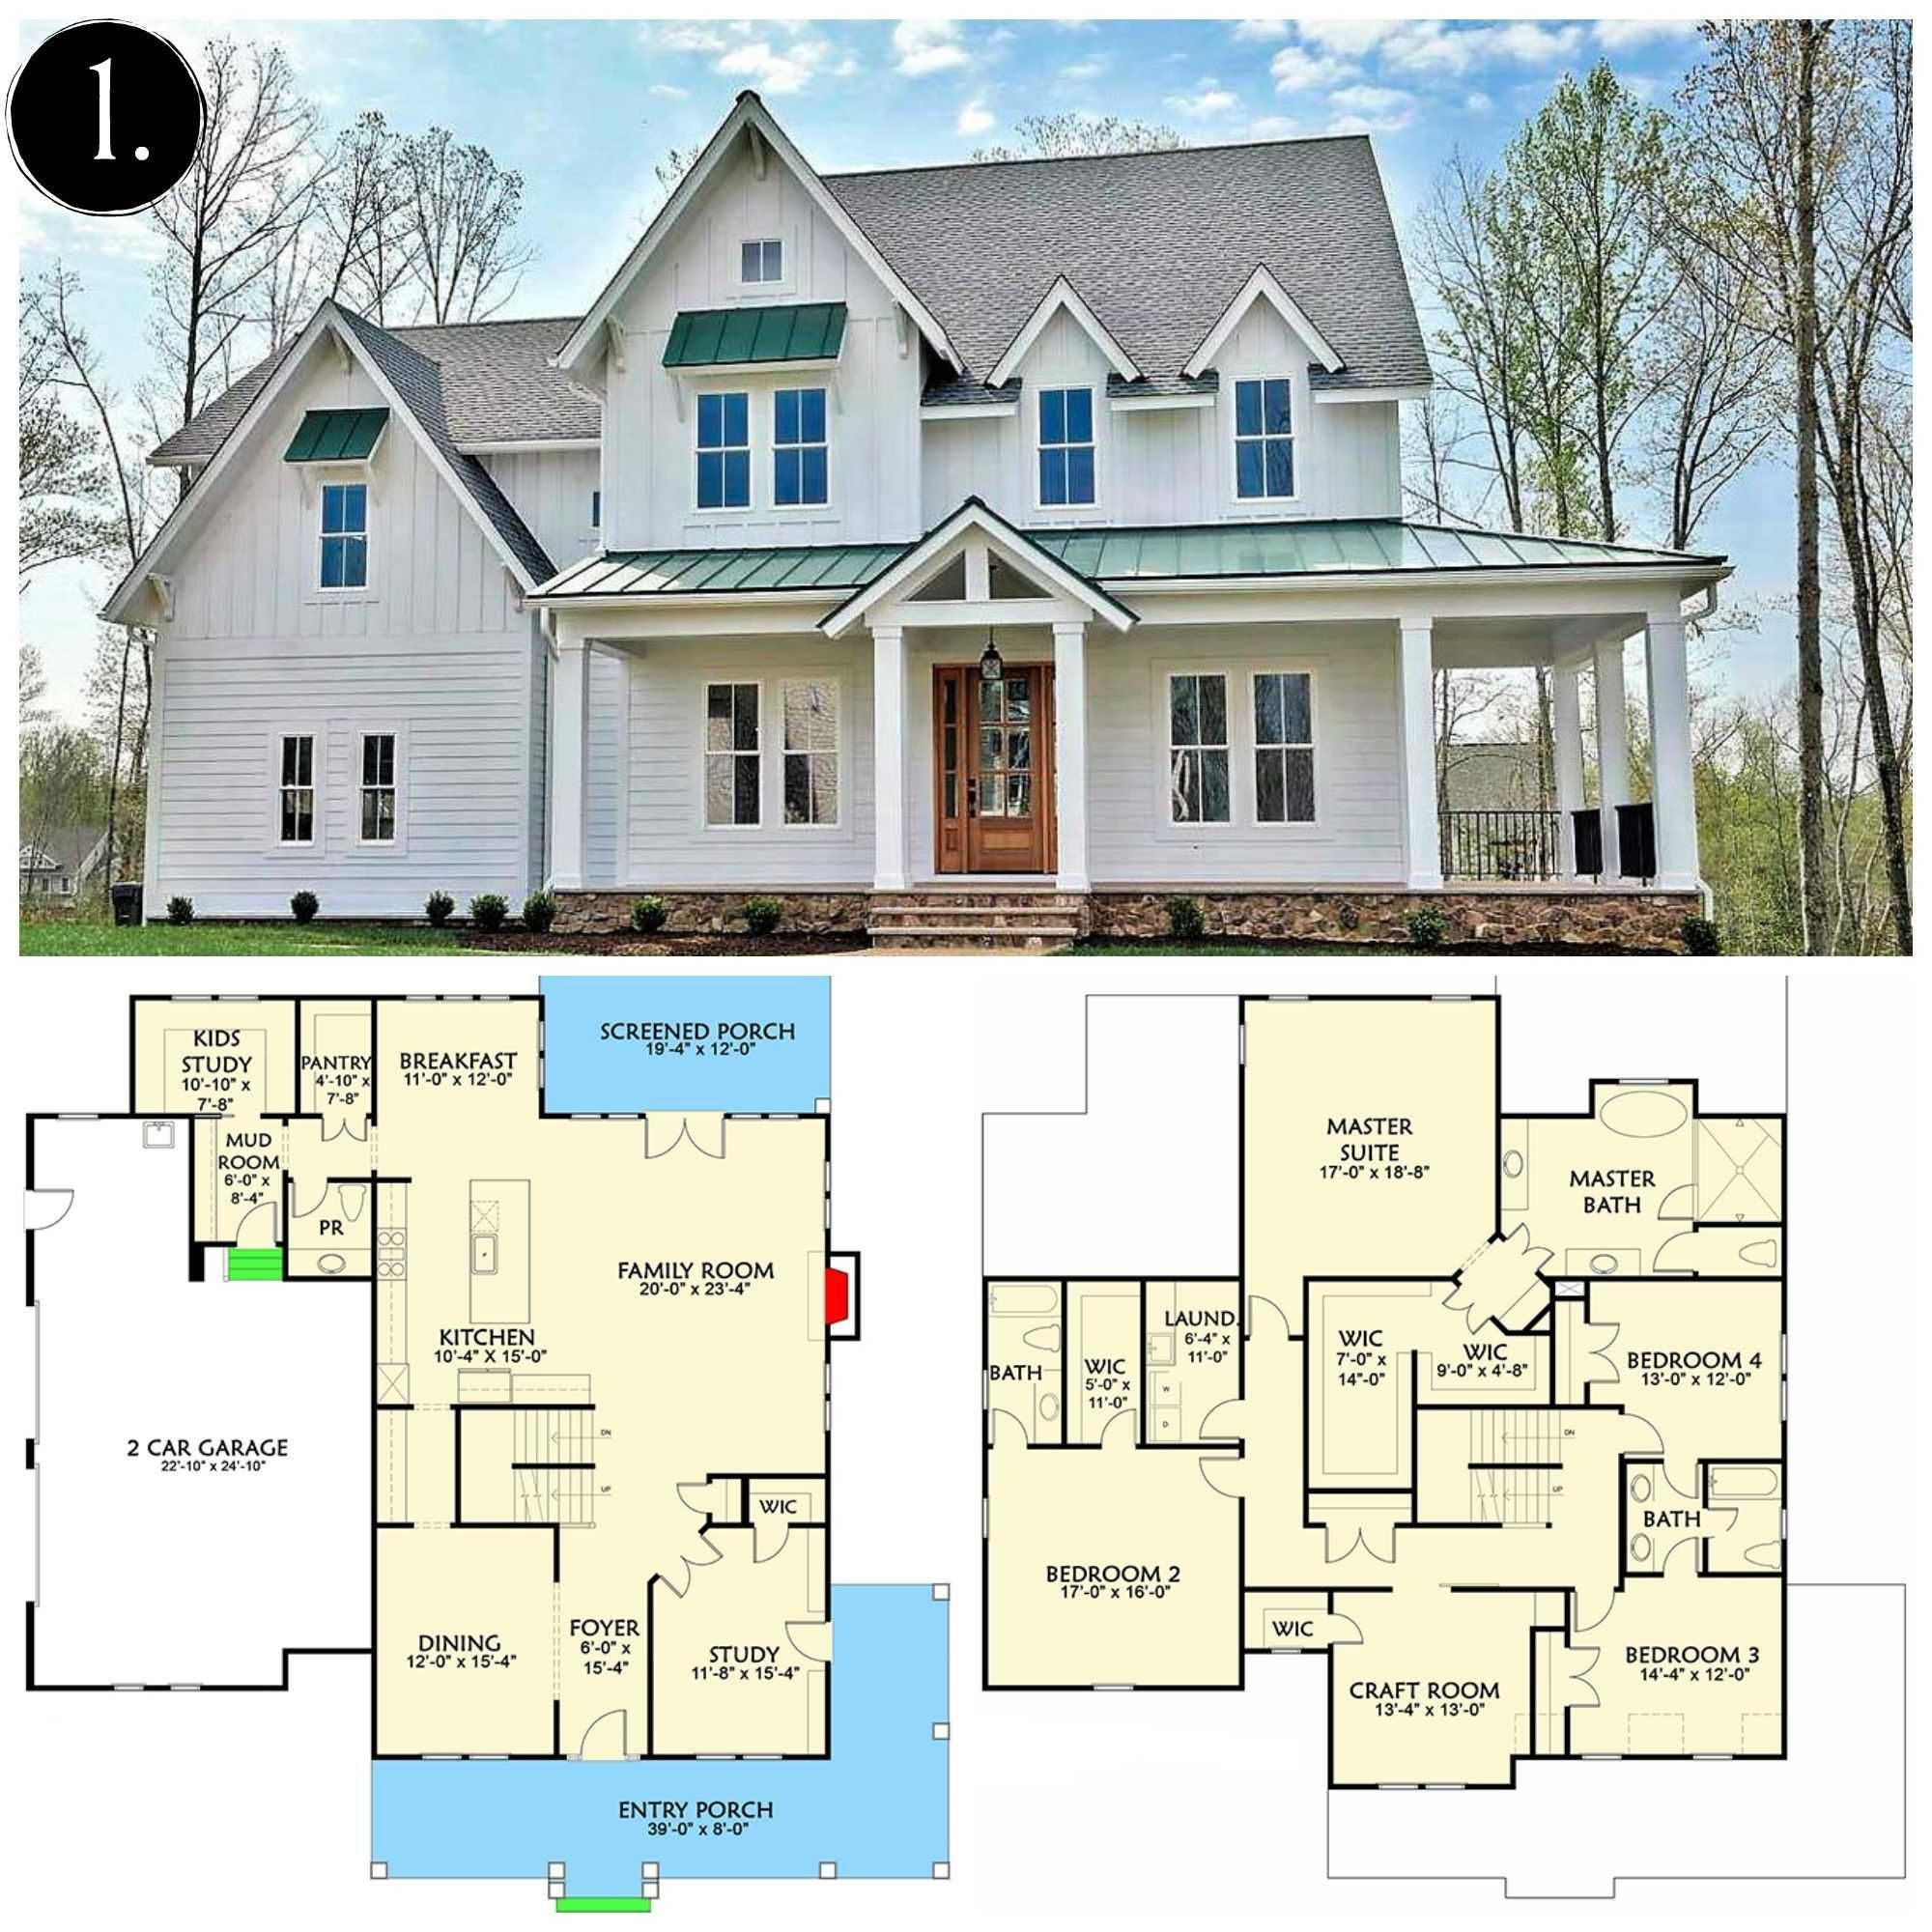 Open Concept Wrap Around Porch Farmhouse Plans Lovely Open Concept Wrap Around Porch F Farmhouse Floor Plans House Plans Farmhouse Modern Farmhouse Floorplan